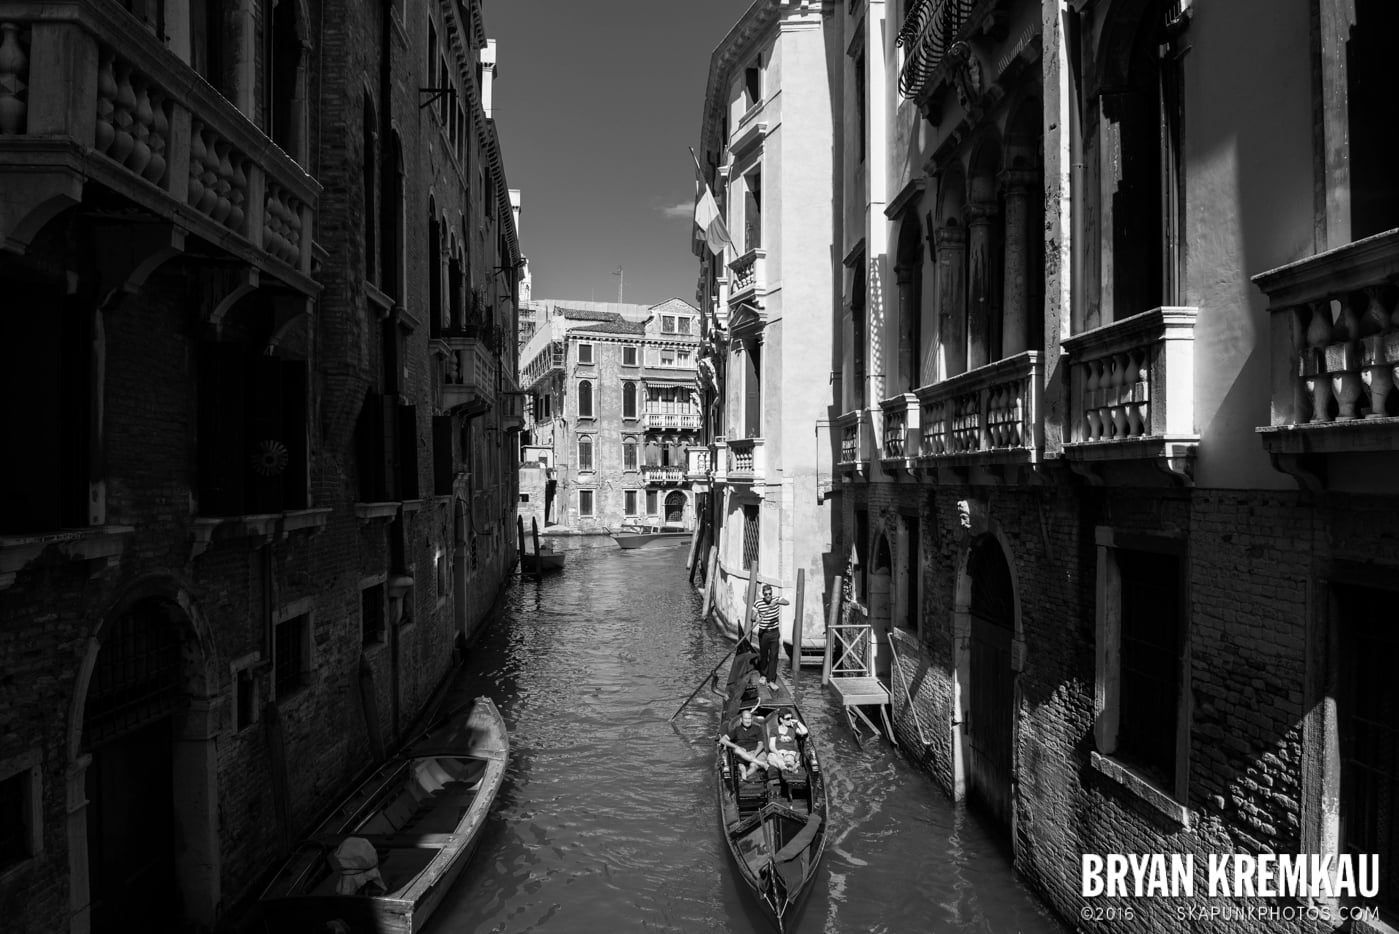 Italy Vacation - Day 4: Venice - 9.12.13 (69)